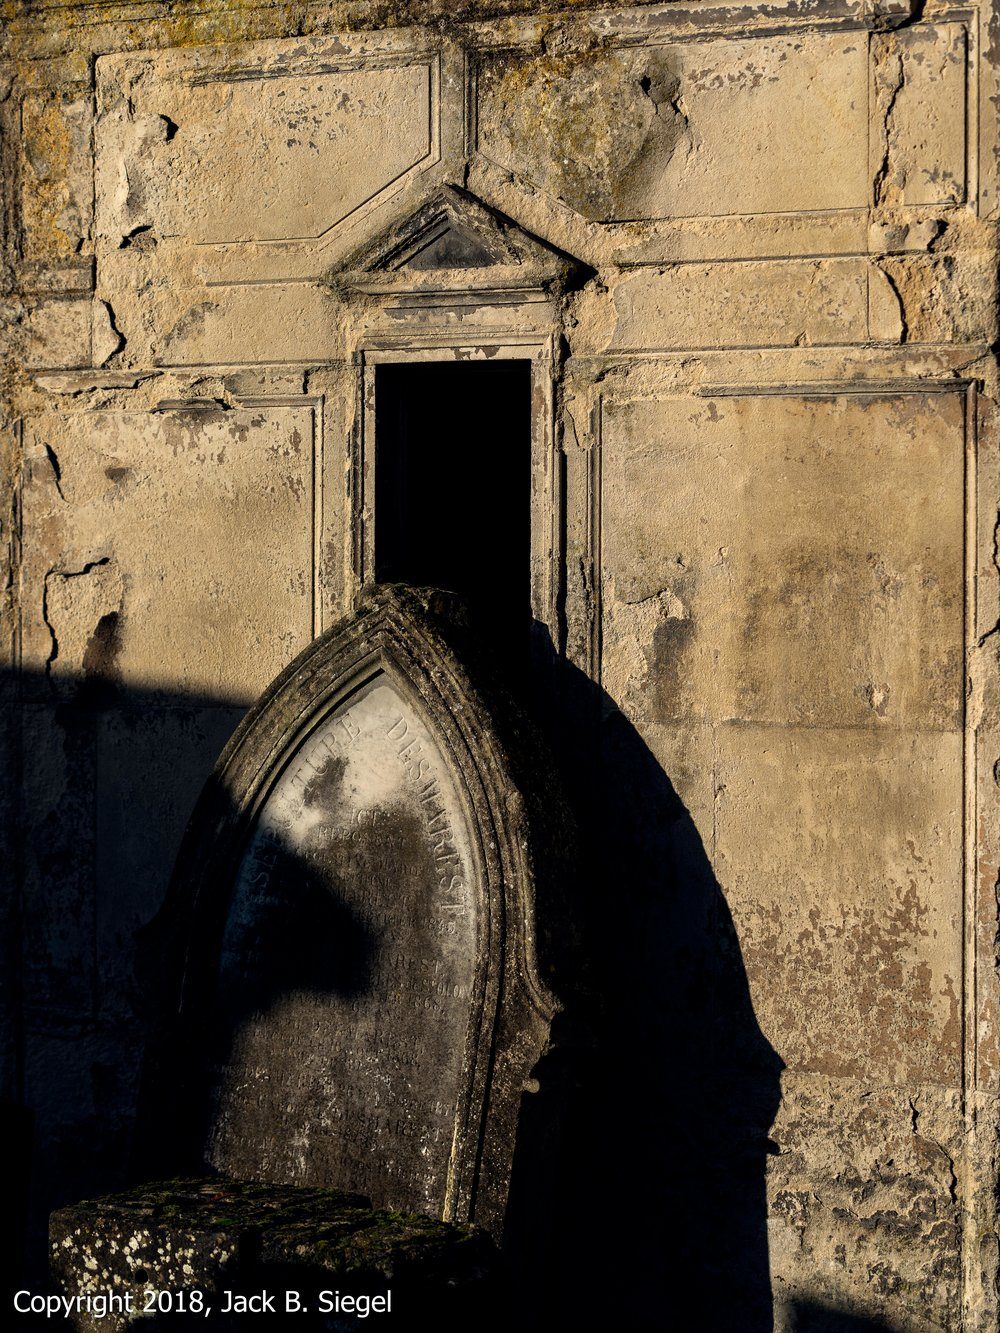 _DS27937PS__PSD Glossy Sharpened_Père Lachaise- %22Won't You Roll Away  the Stone, Why be Cold and So Alone?%22_Copyright 2018 jpeg_.jpg